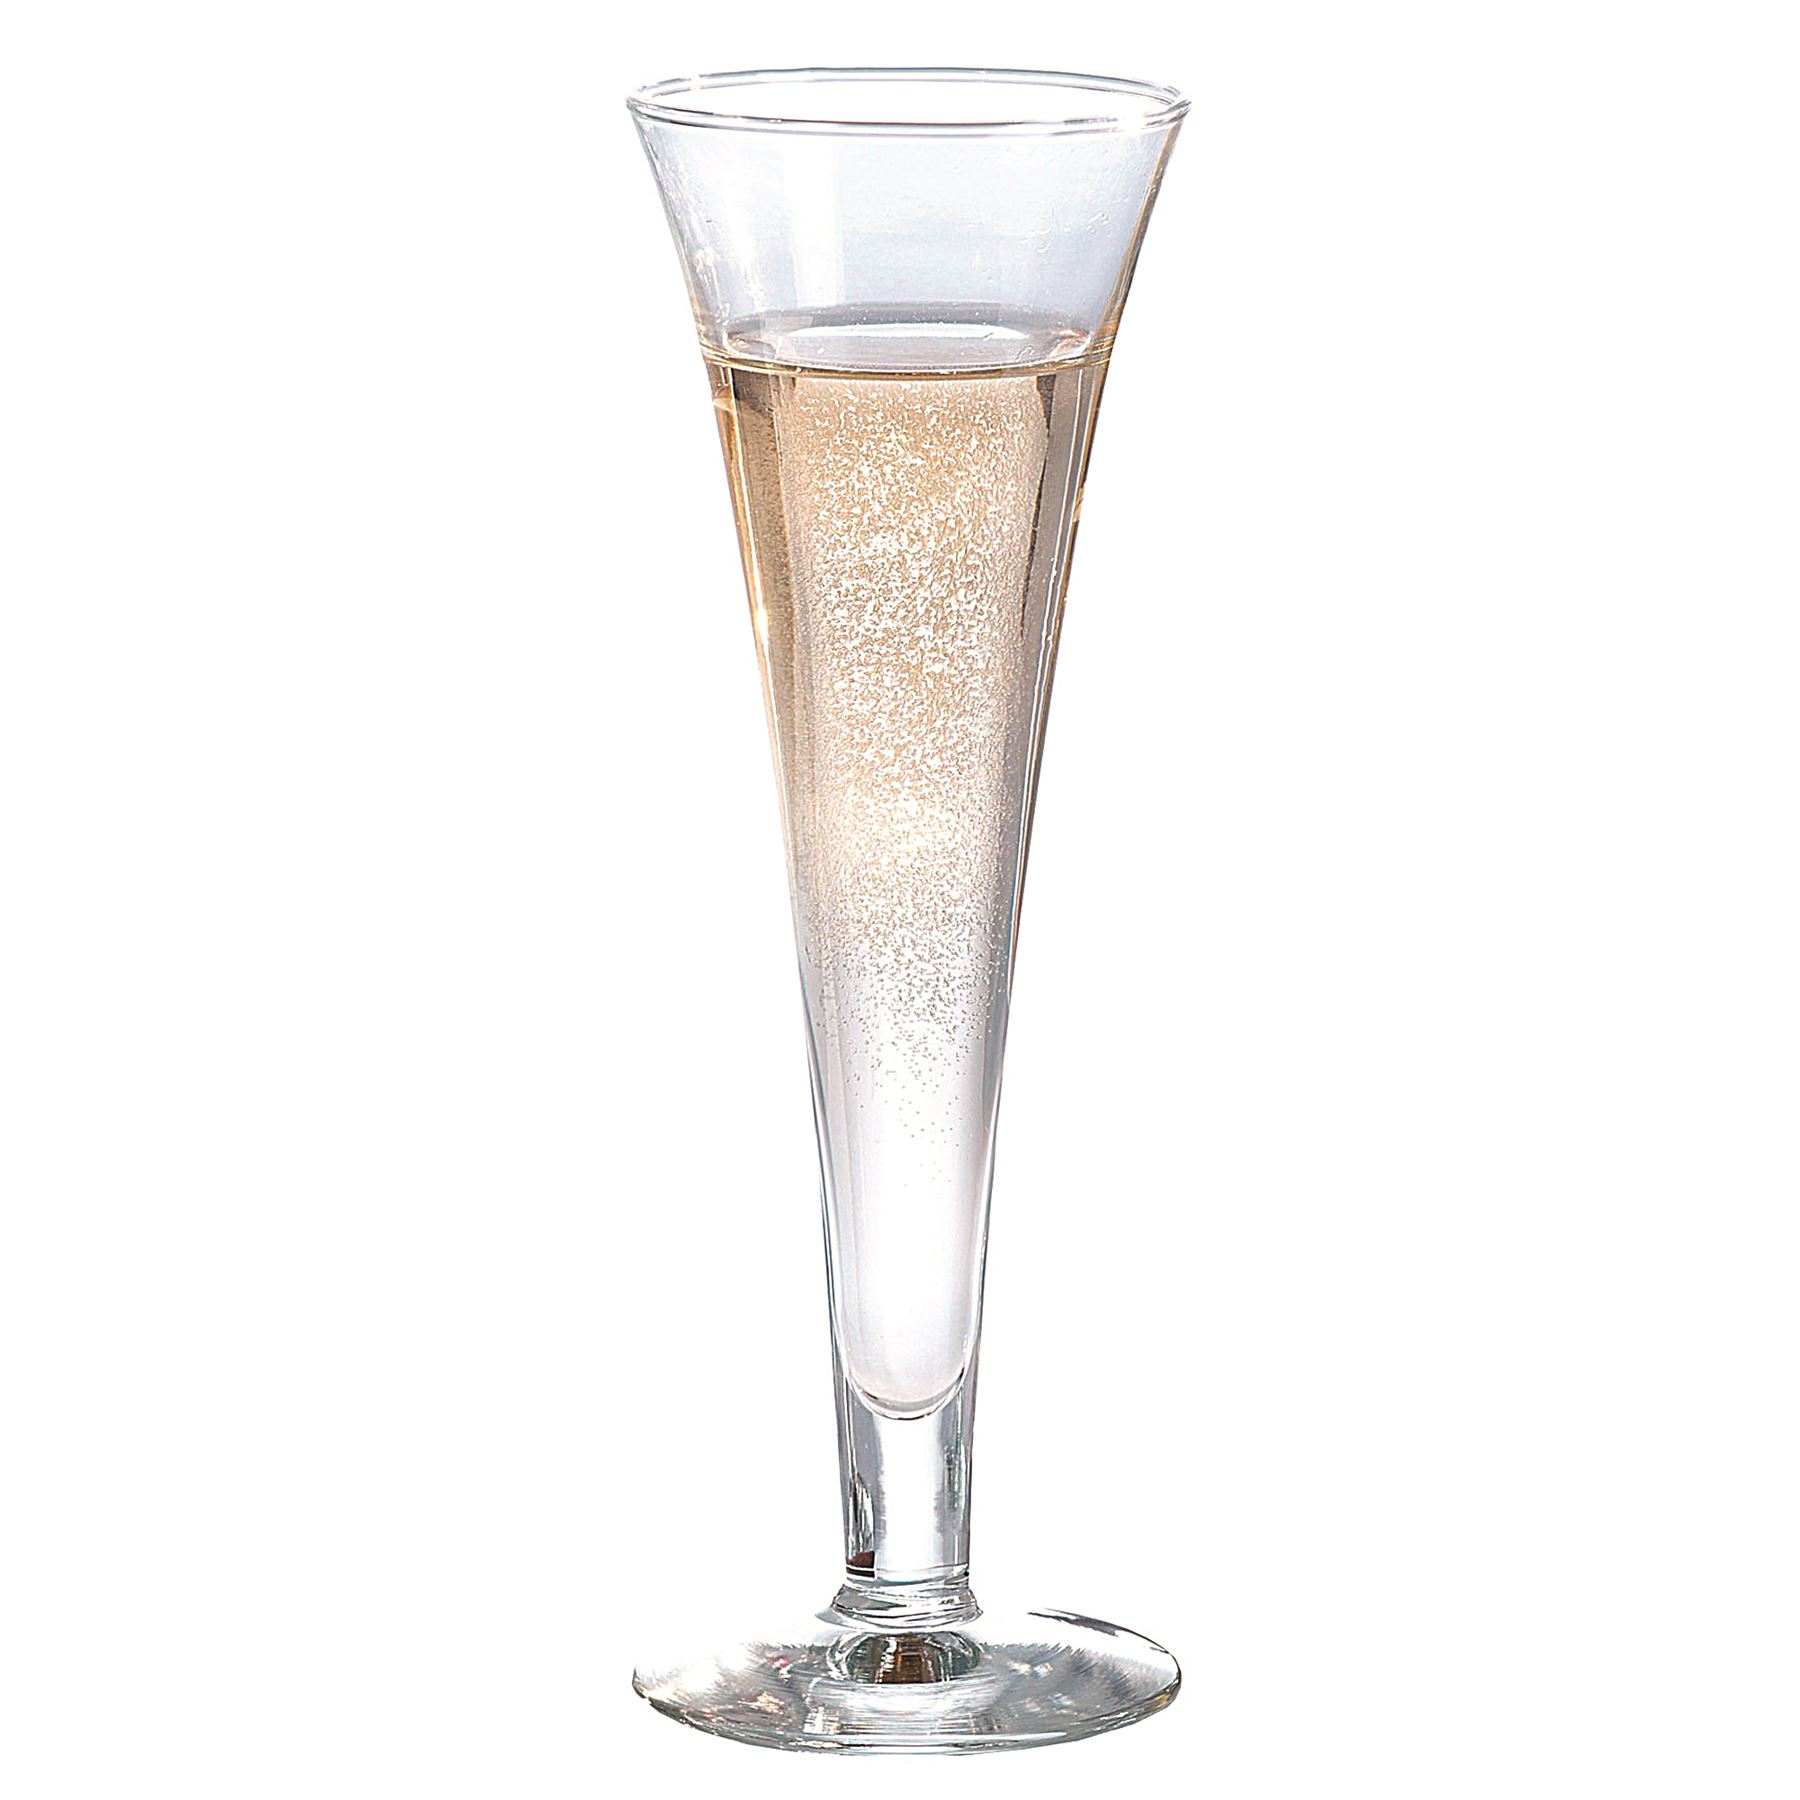 07acab94812 Details about 6x Champagne Glasses Modern Glass Flutes Prosecco Sparkling  Wine Stemless 160ml